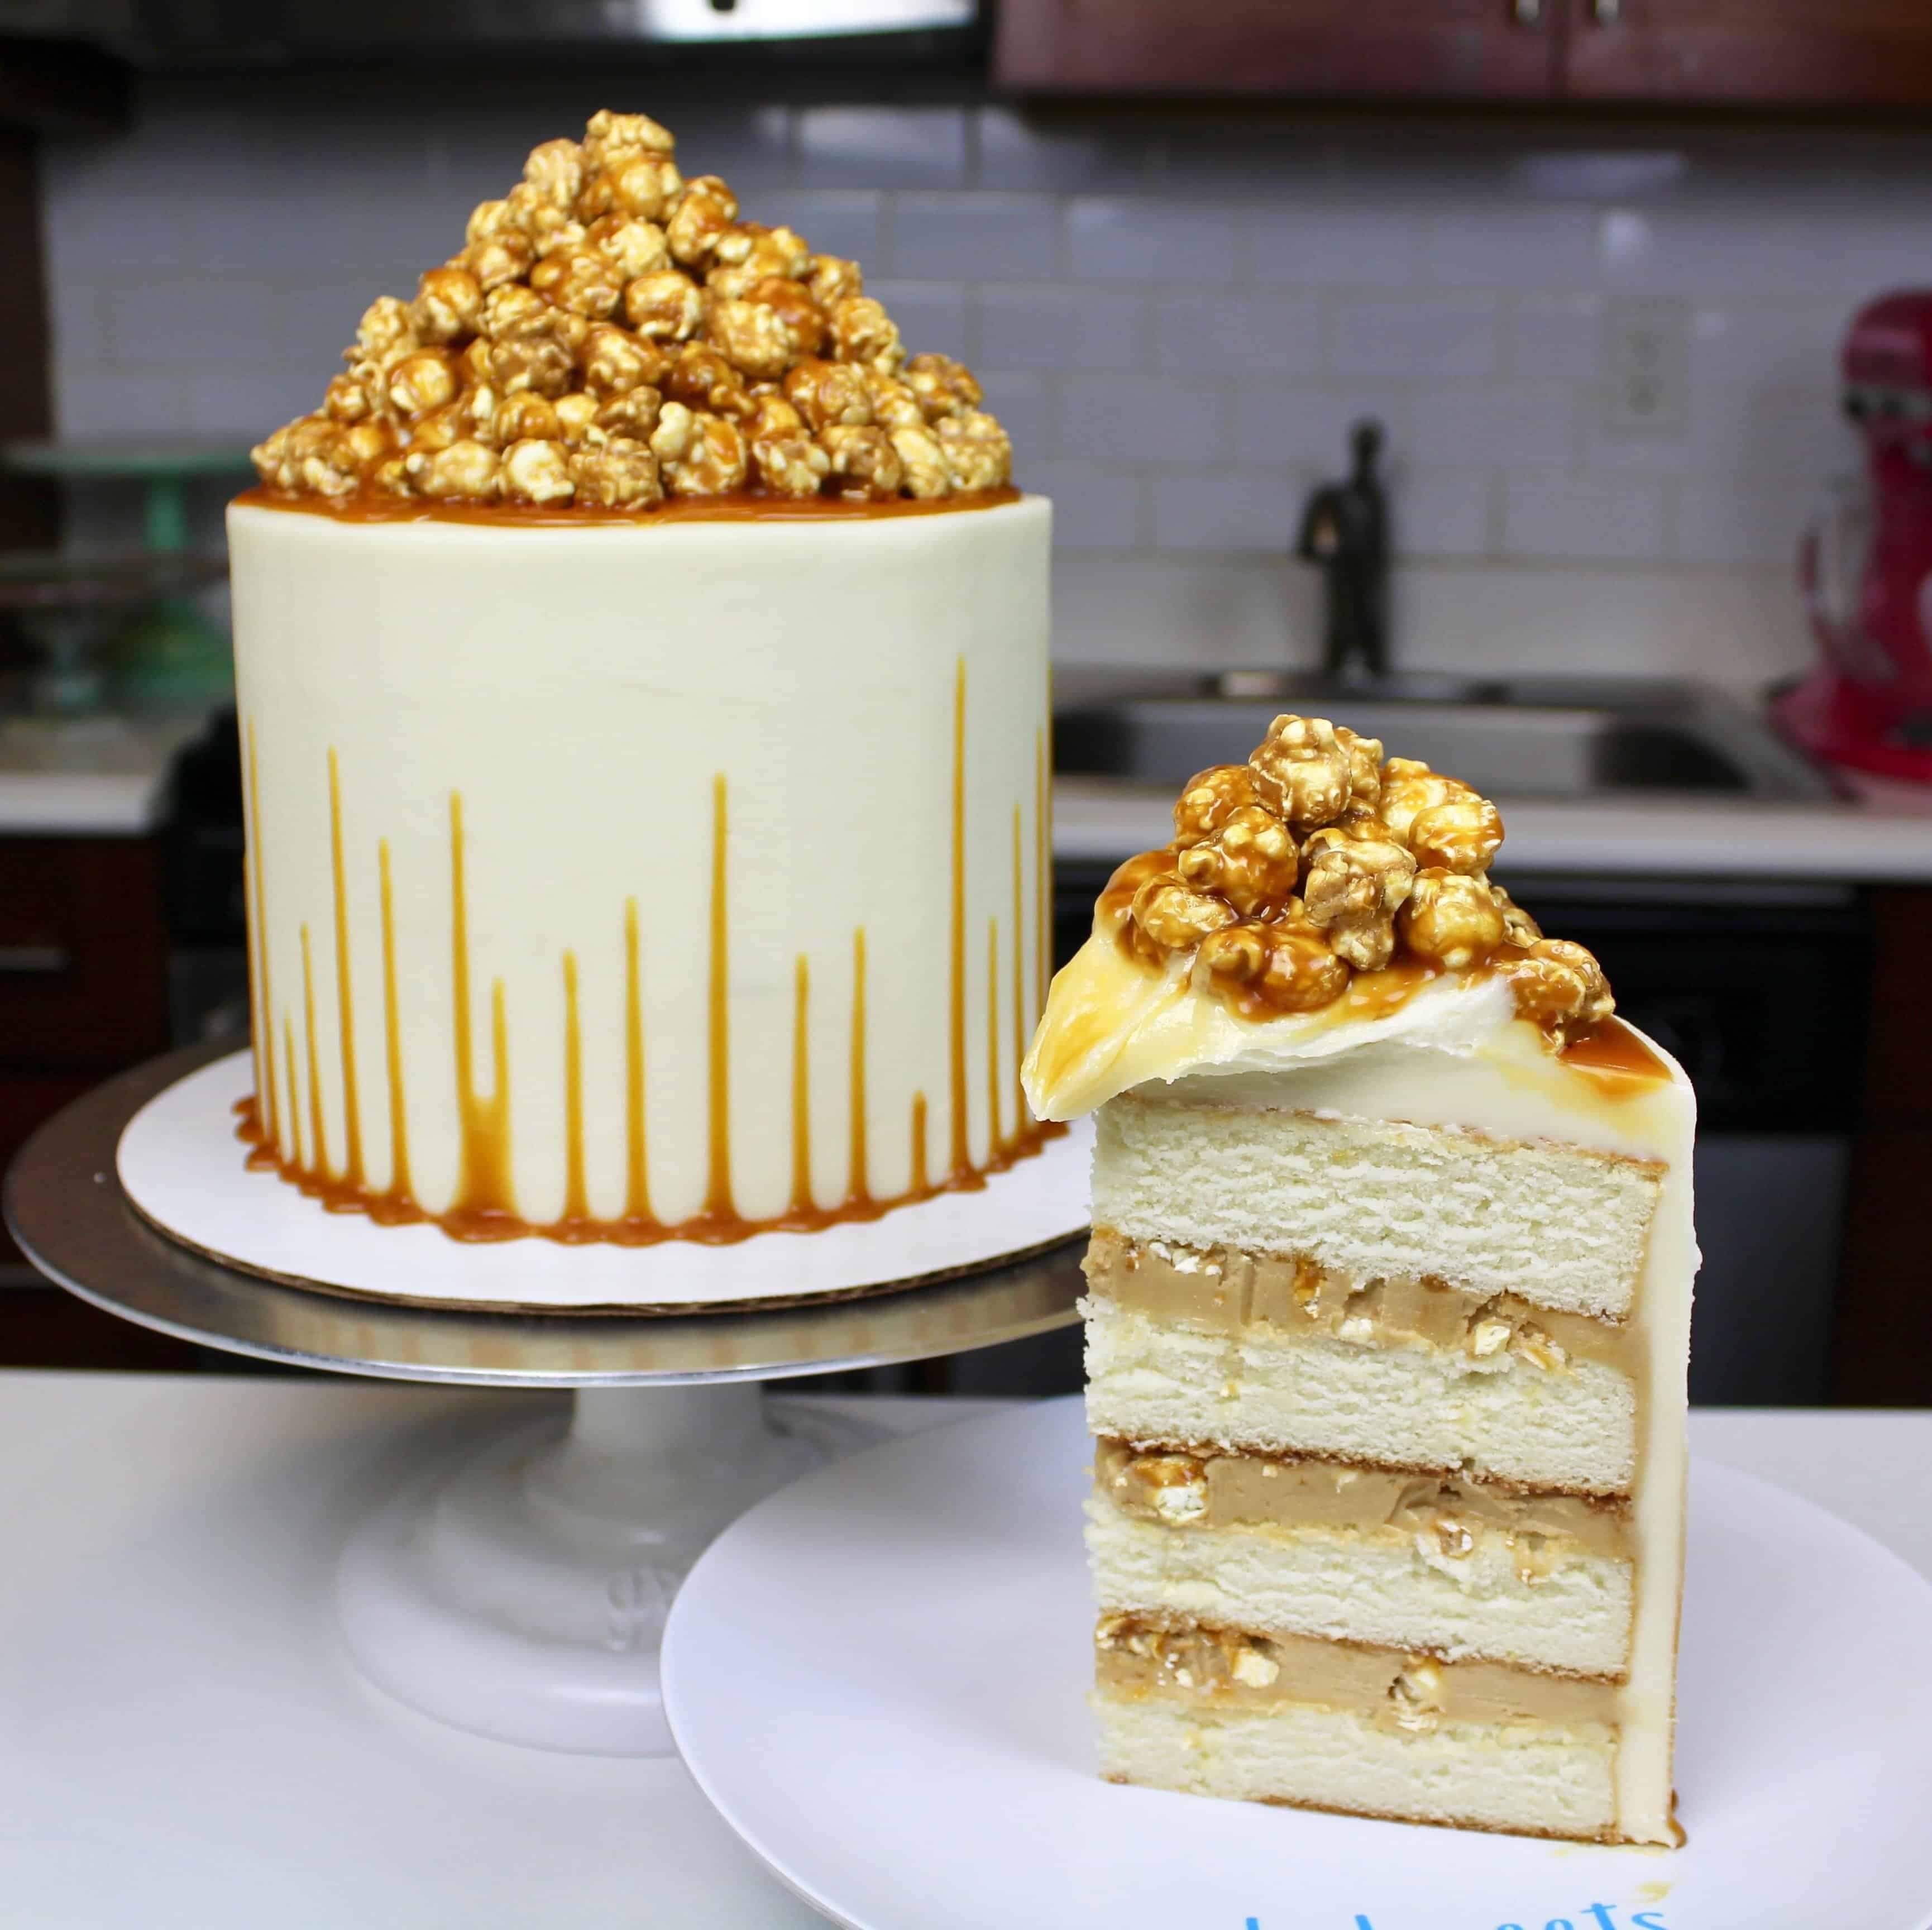 caramel corn cake with an upside down caramel drip